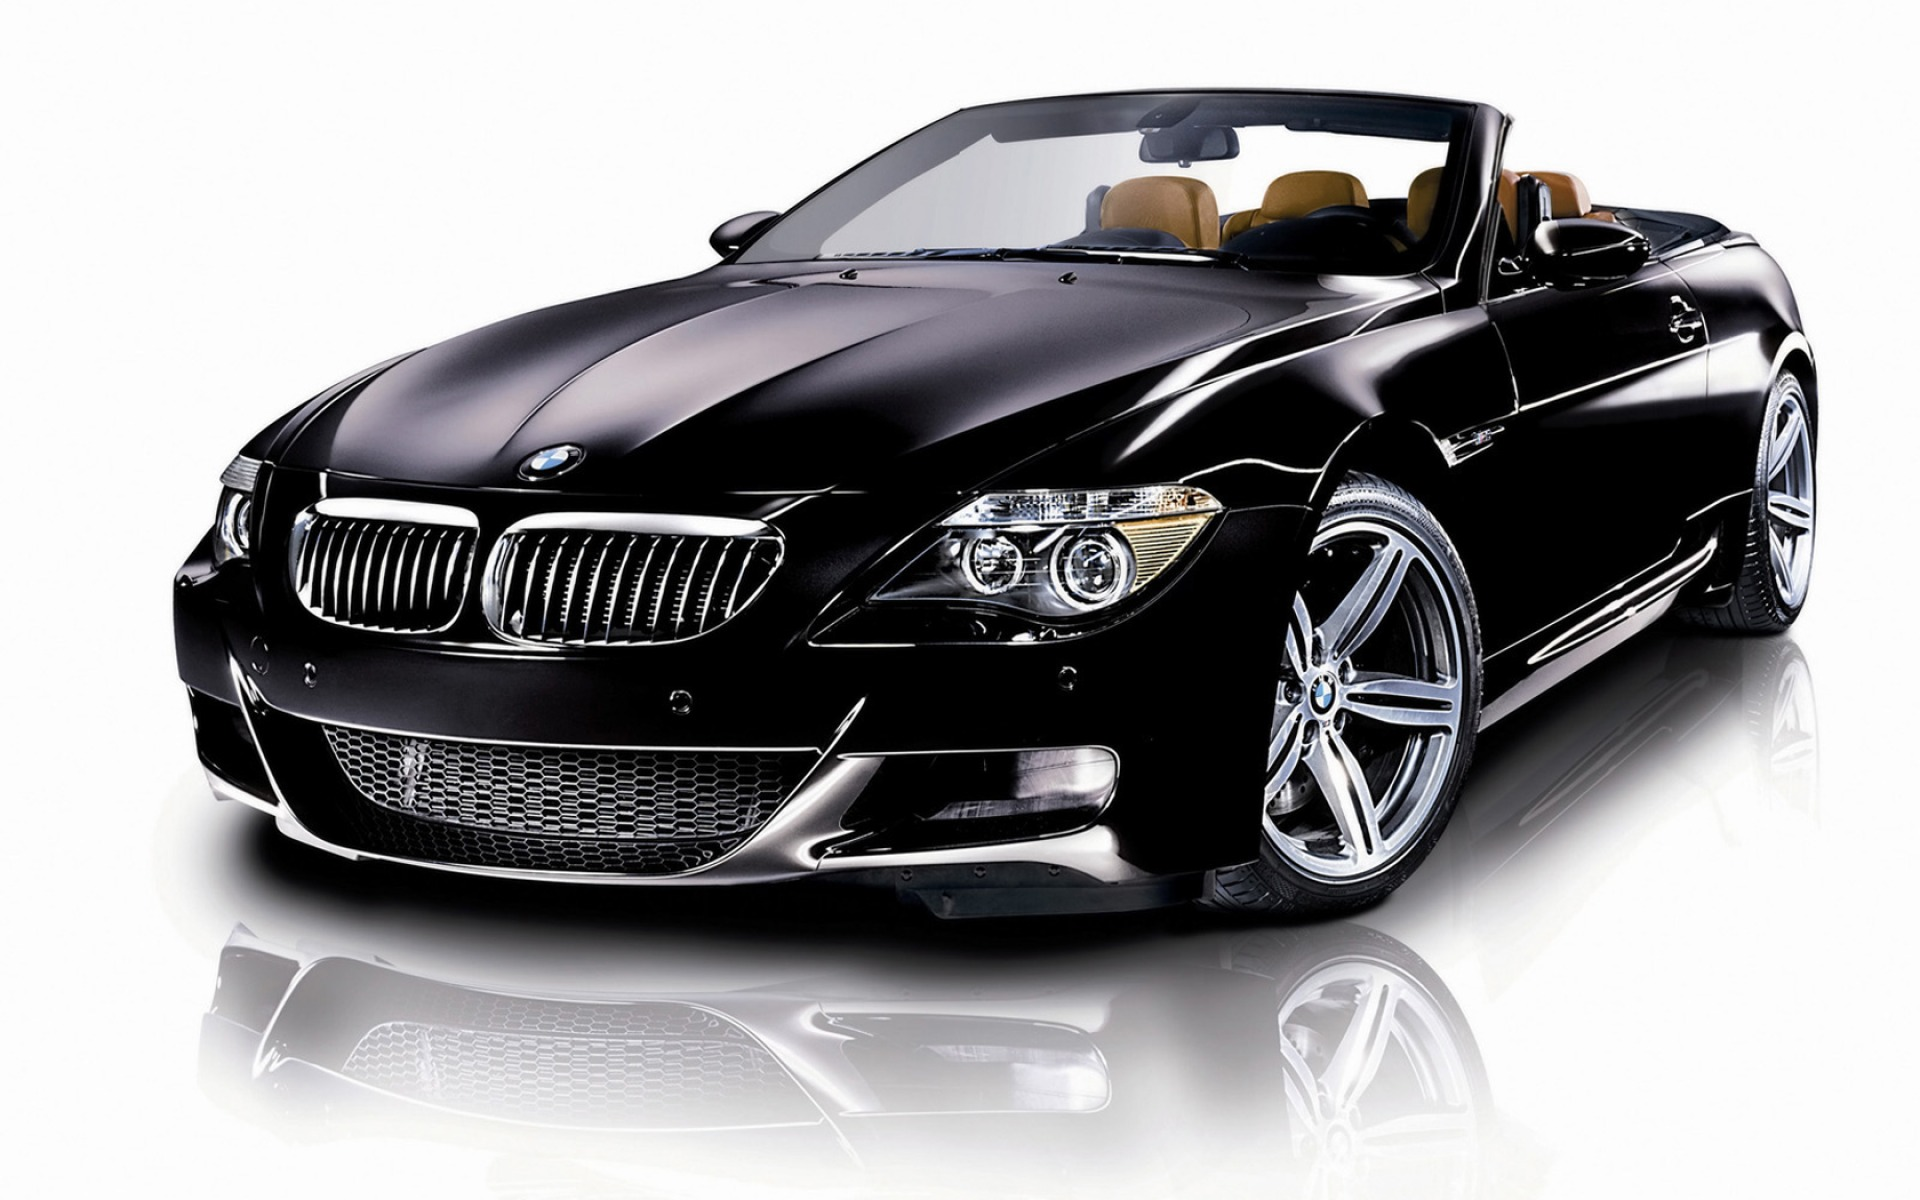 Ultrablogus  Pleasing Bmw Car Wallpaper Wallpapers For Free Download About   With Extraordinary Bmw M Convertible Wallpaper Bmw Cars With Attractive Interior Etios Also Interior Audi A In Addition Audi Suv Interior And Ford Ranger Interior As Well As Nissan Gtr  Interior Additionally Honda Cr Z Hybrid Interior From Allfreedownloadcom With Ultrablogus  Extraordinary Bmw Car Wallpaper Wallpapers For Free Download About   With Attractive Bmw M Convertible Wallpaper Bmw Cars And Pleasing Interior Etios Also Interior Audi A In Addition Audi Suv Interior From Allfreedownloadcom